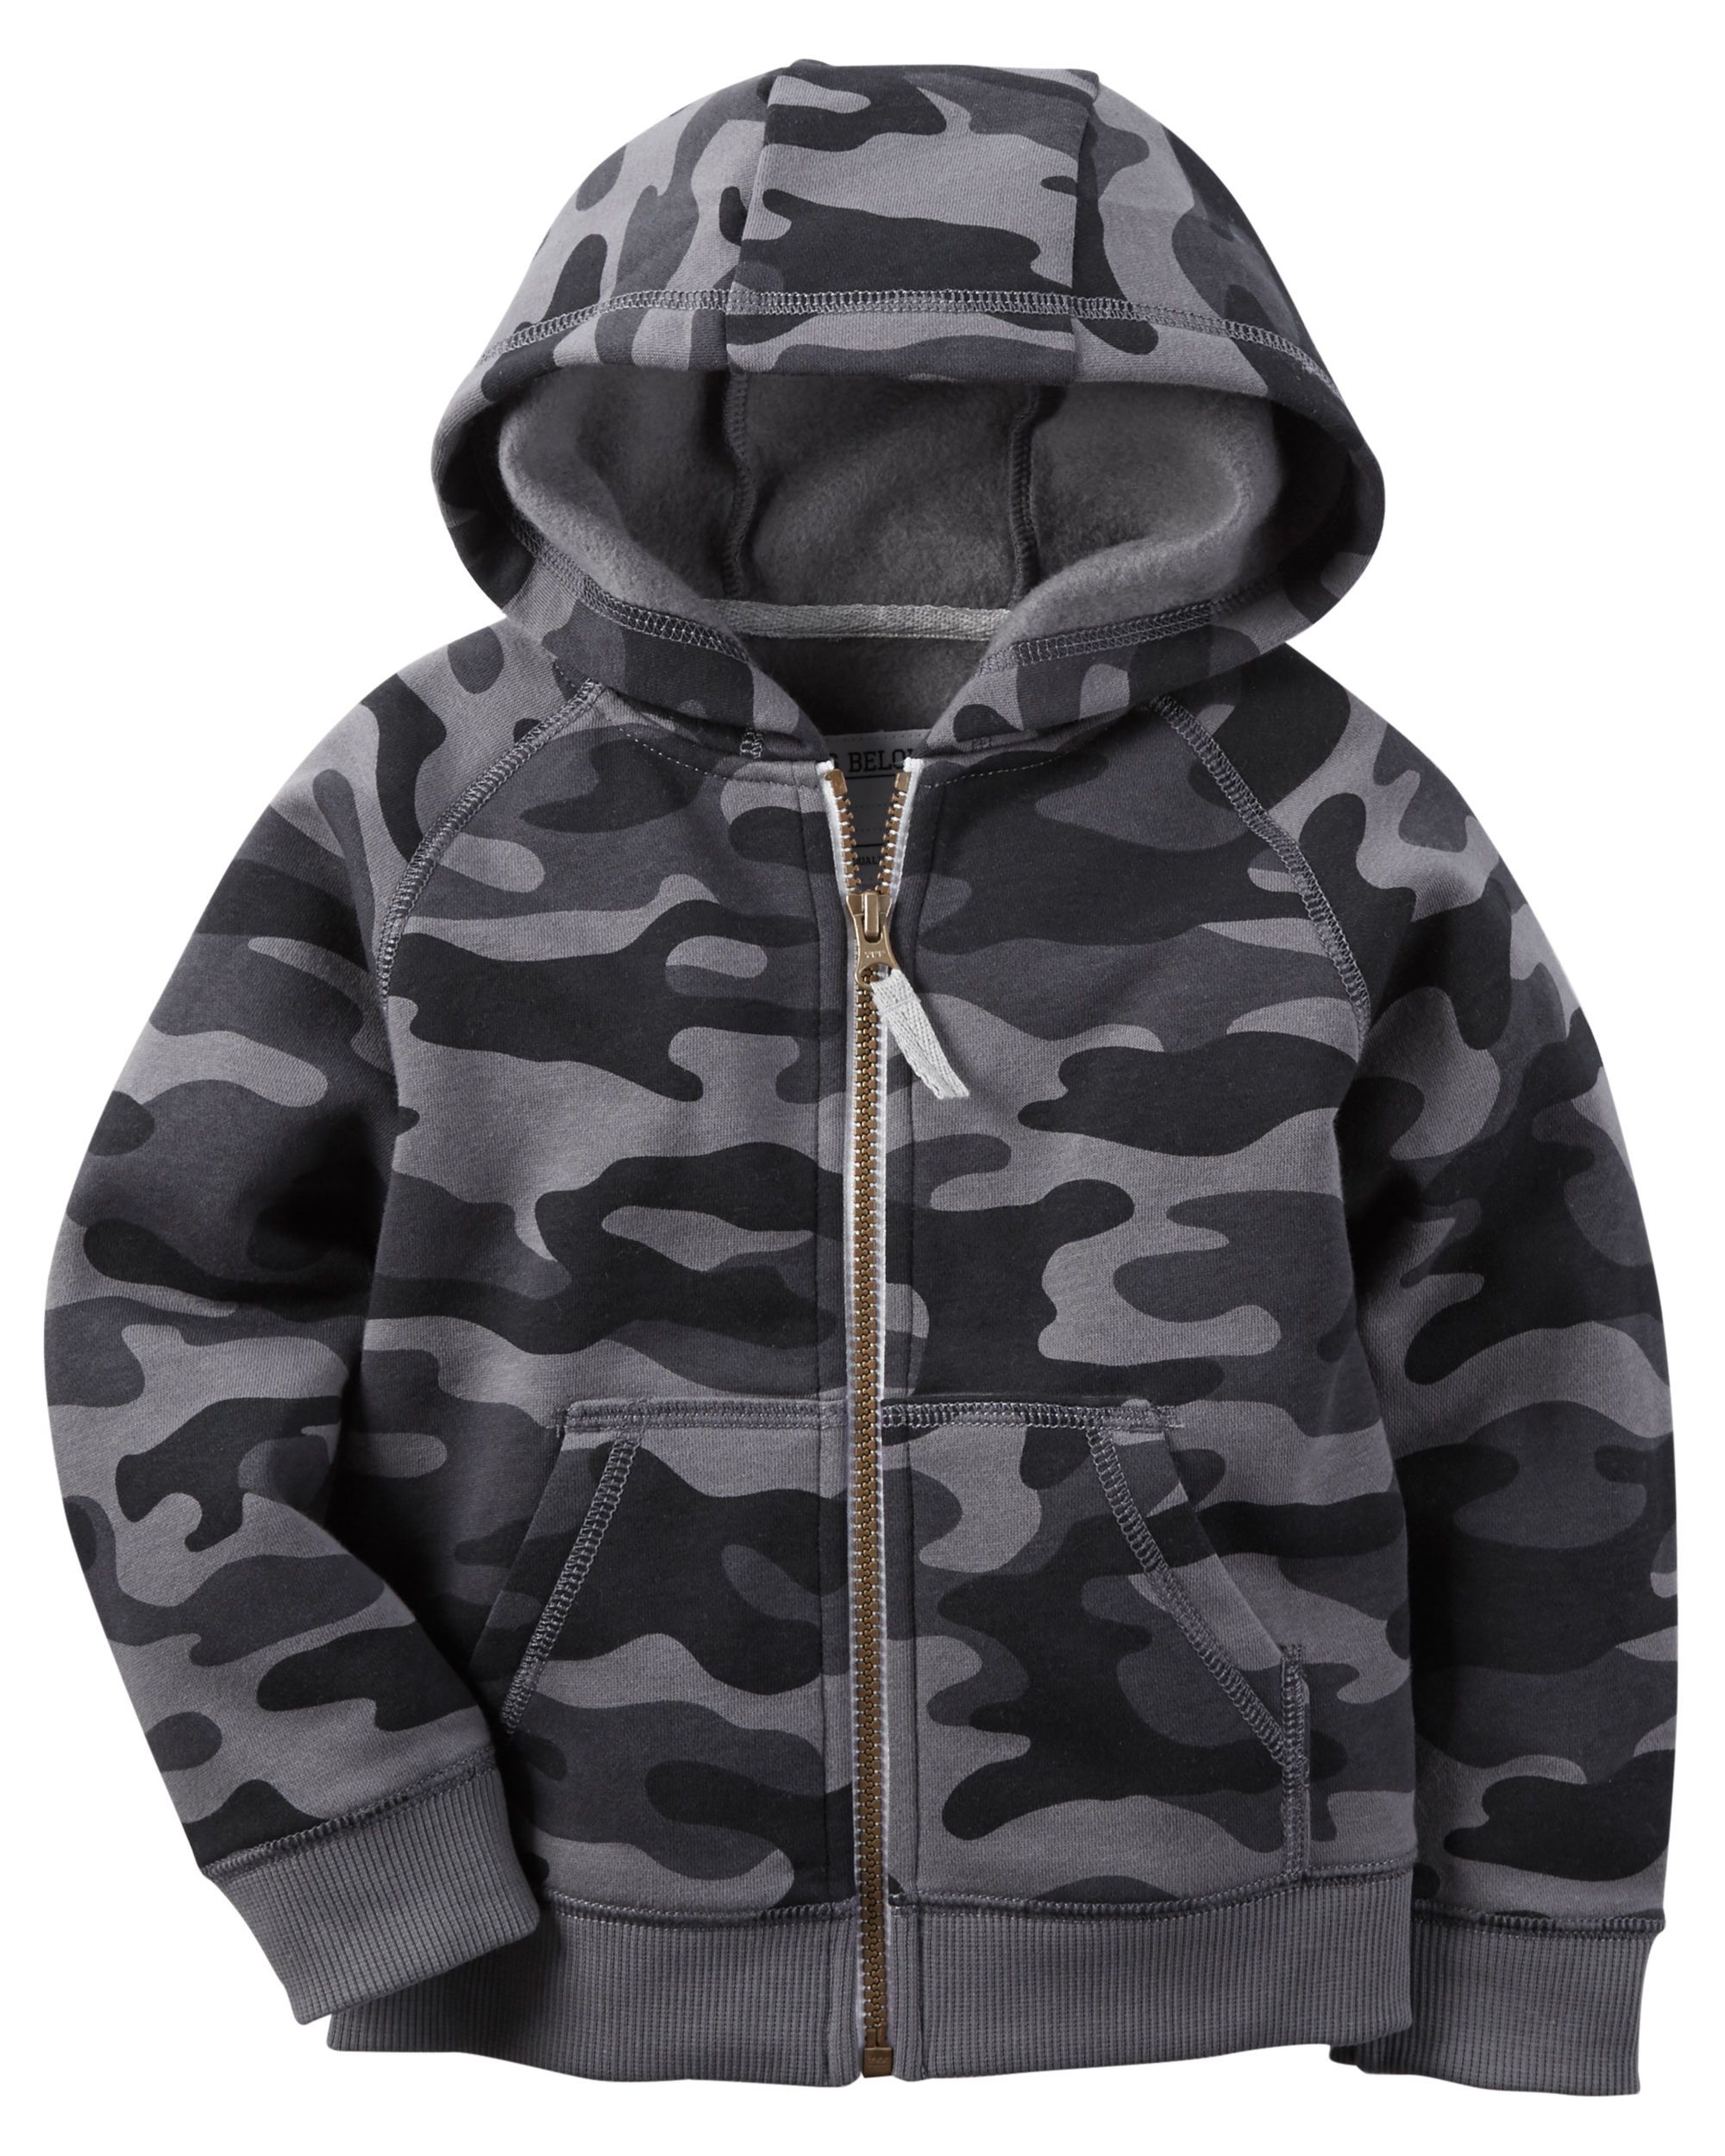 e4733dade8af Baby Boy Camo Fleece Zip-Up Hoodie from Carters.com. Shop clothing ...